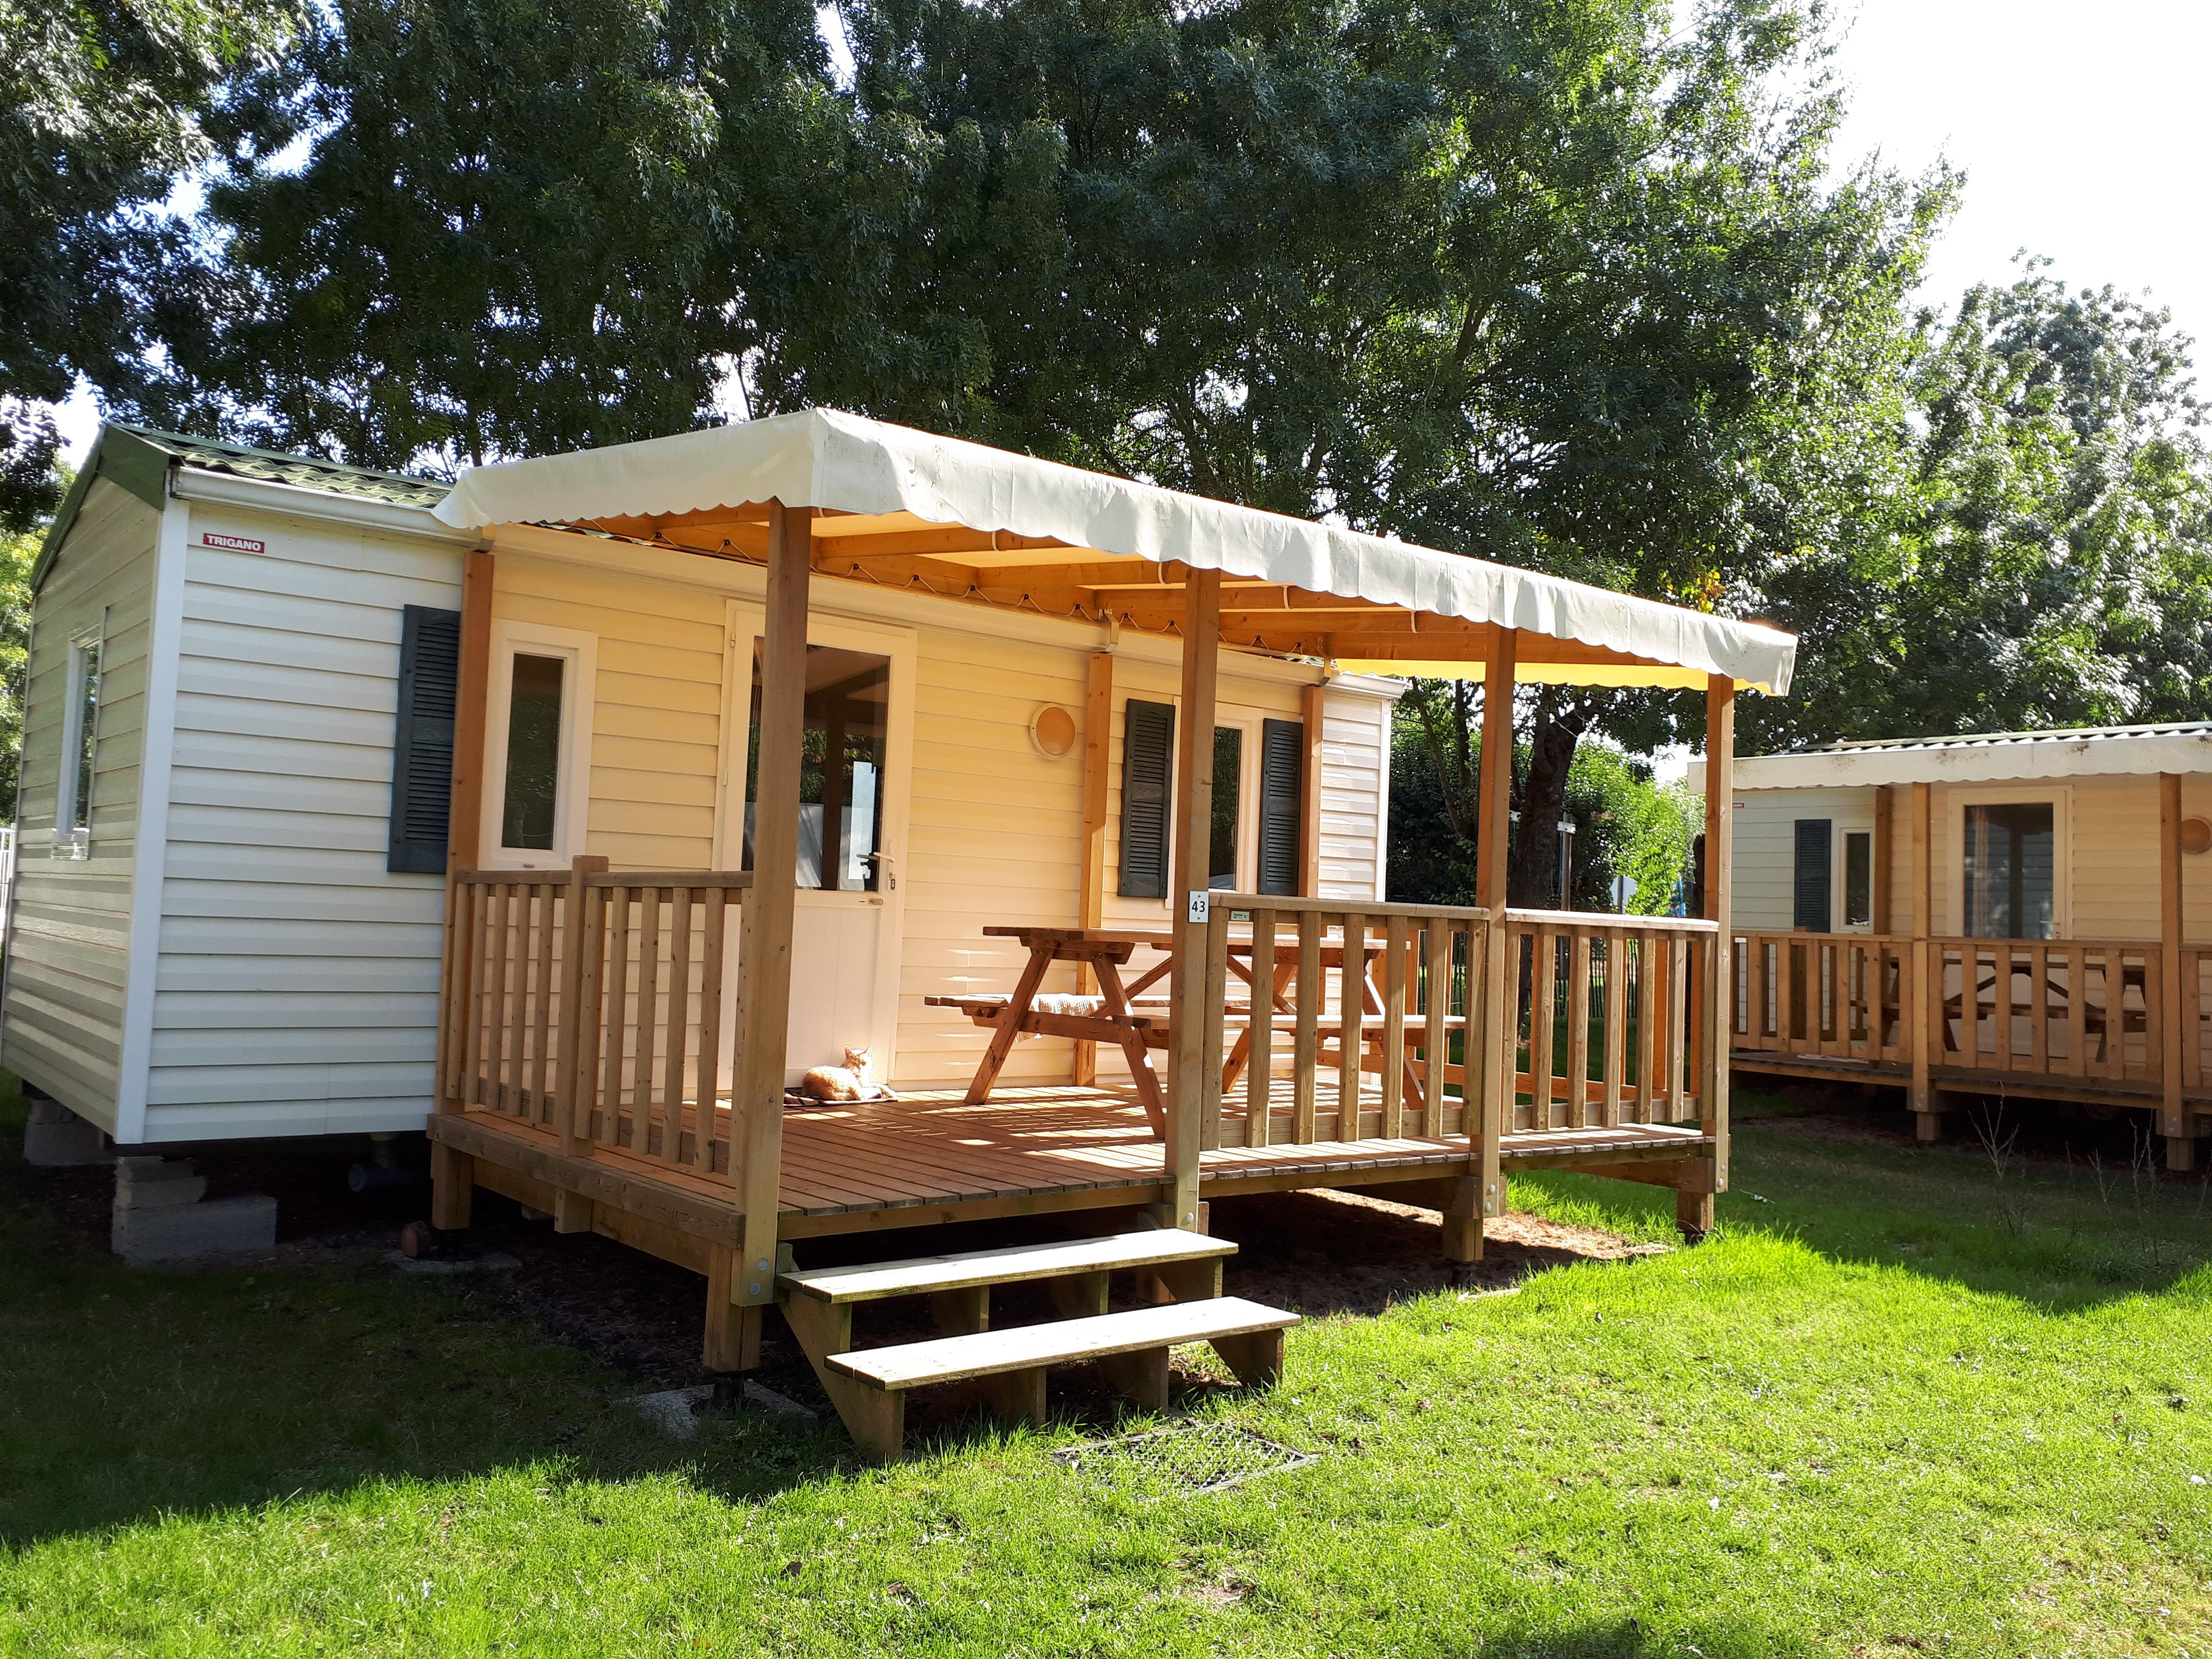 Location - Mobilhome 18 M² (2 Chambres) + Terrasse Couverte - Camping Le Lidon